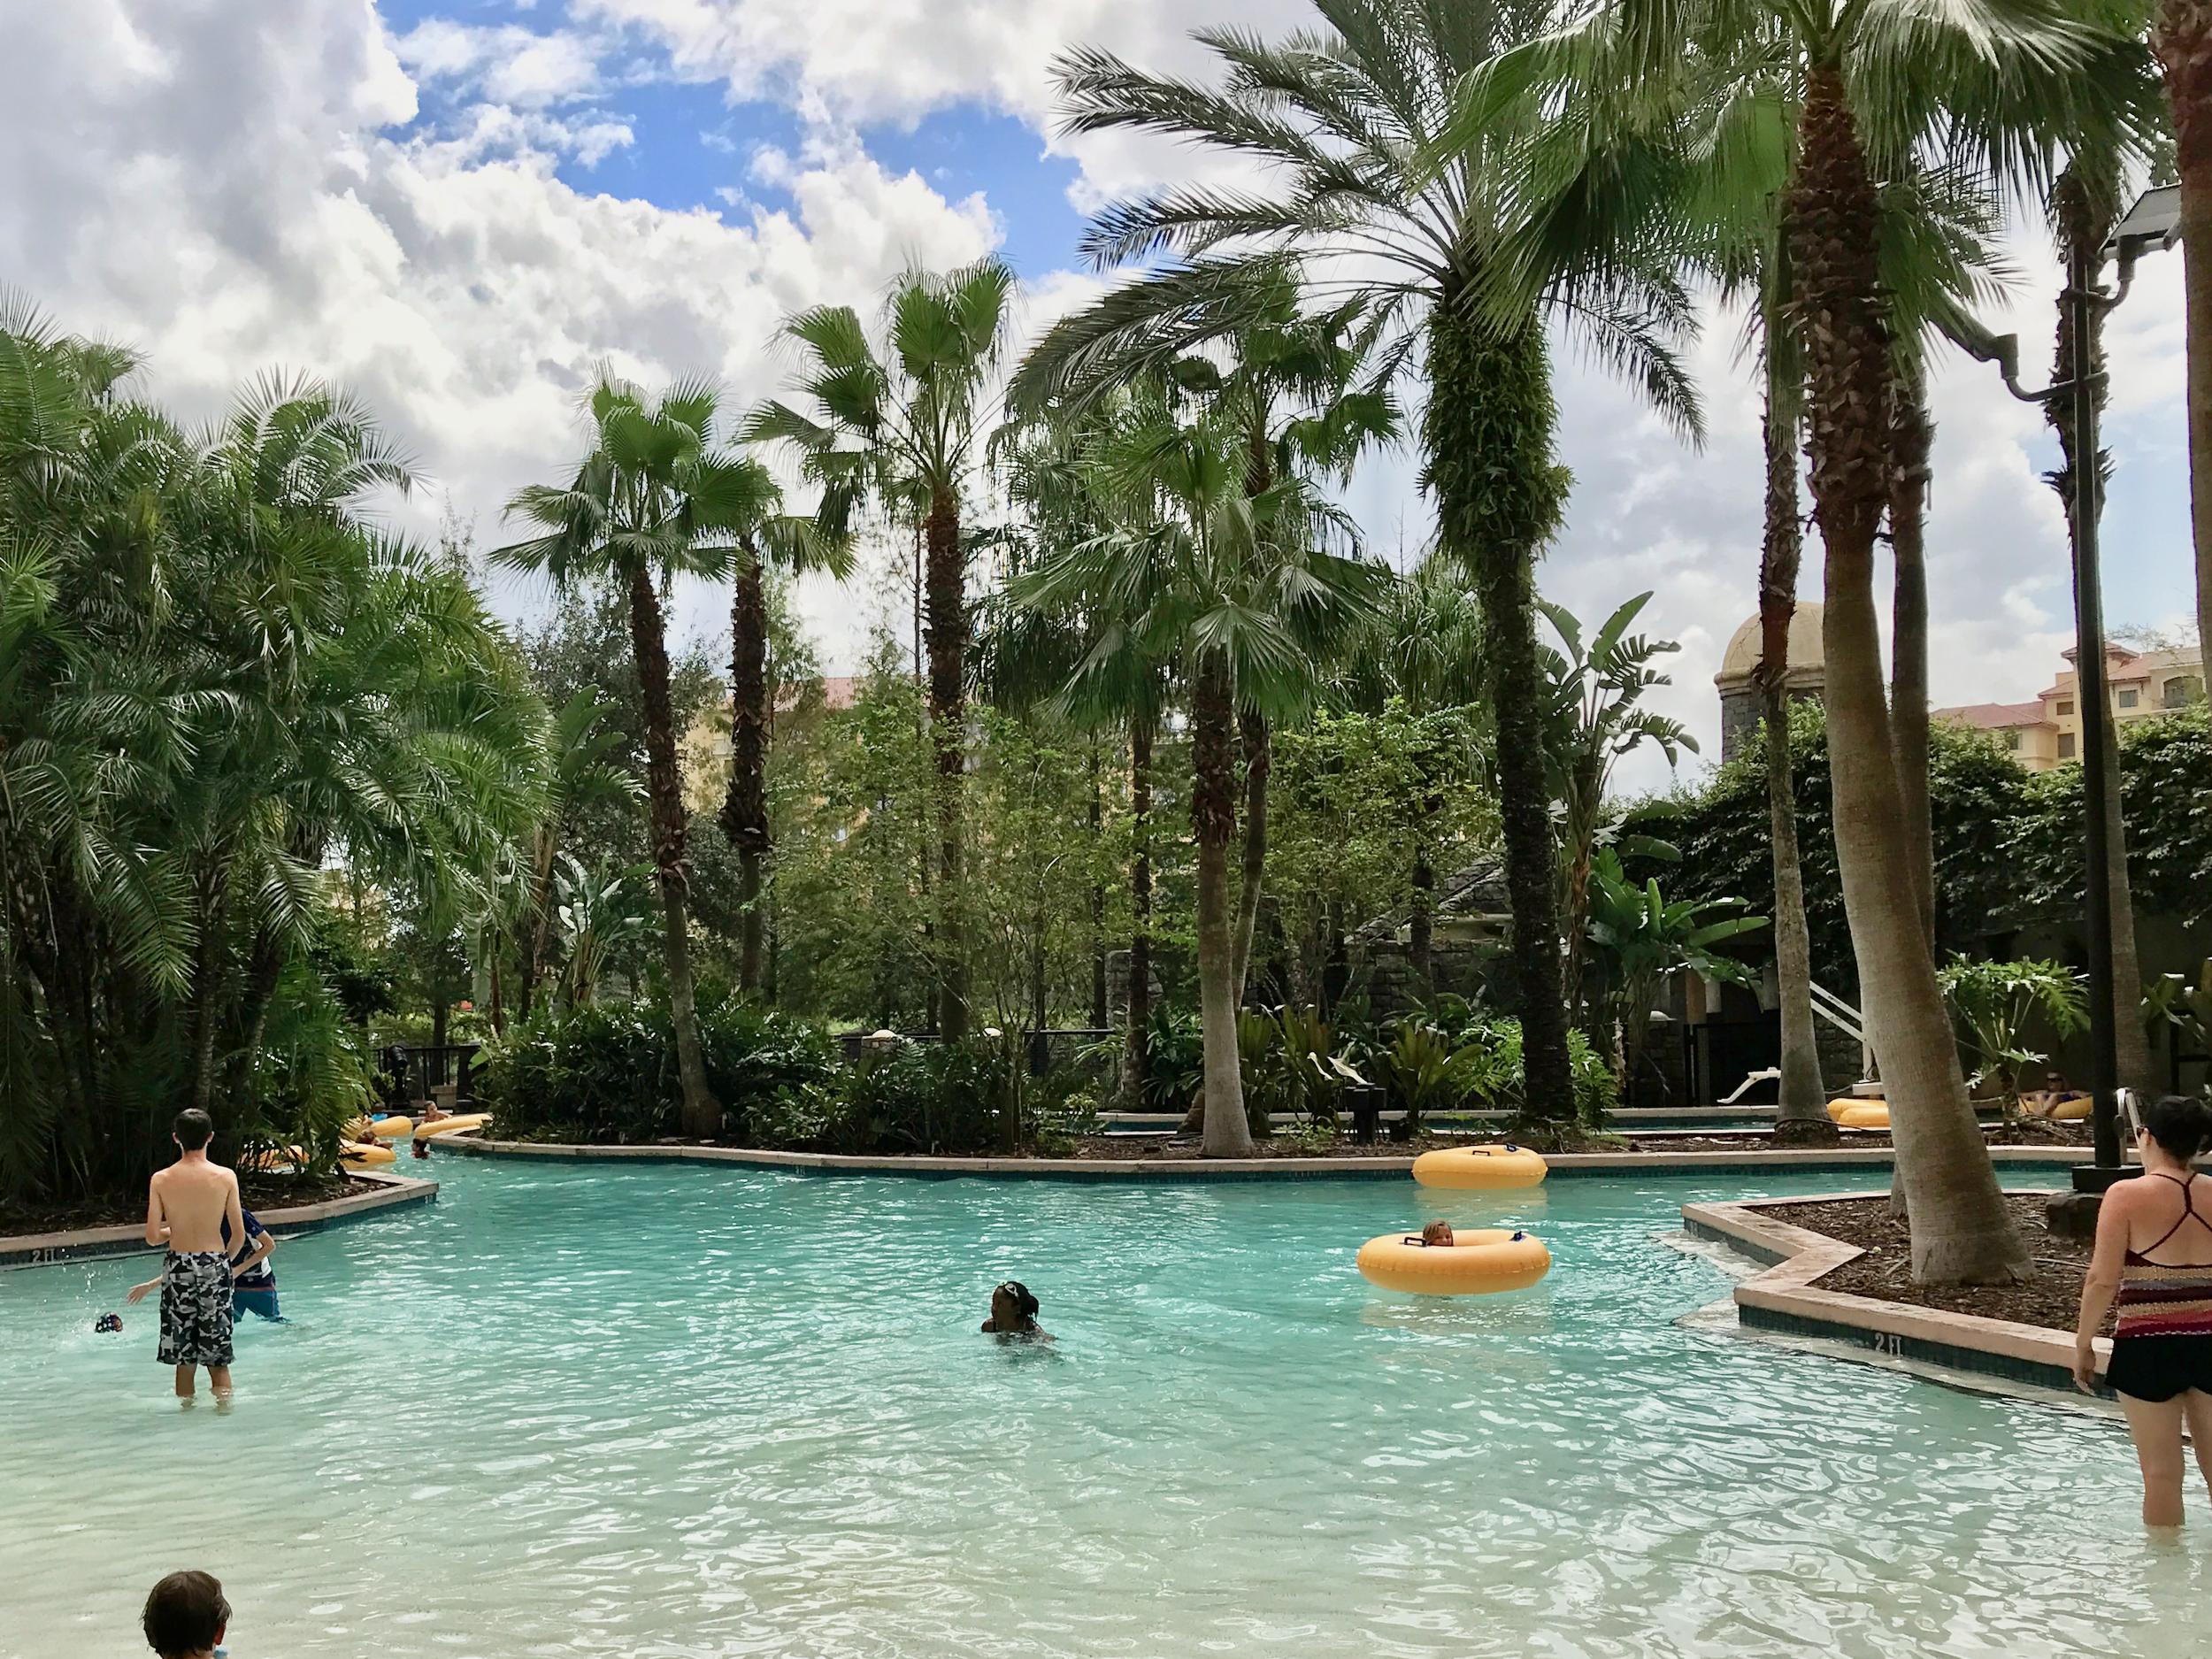 Lazy river lagoon outside Tower 5